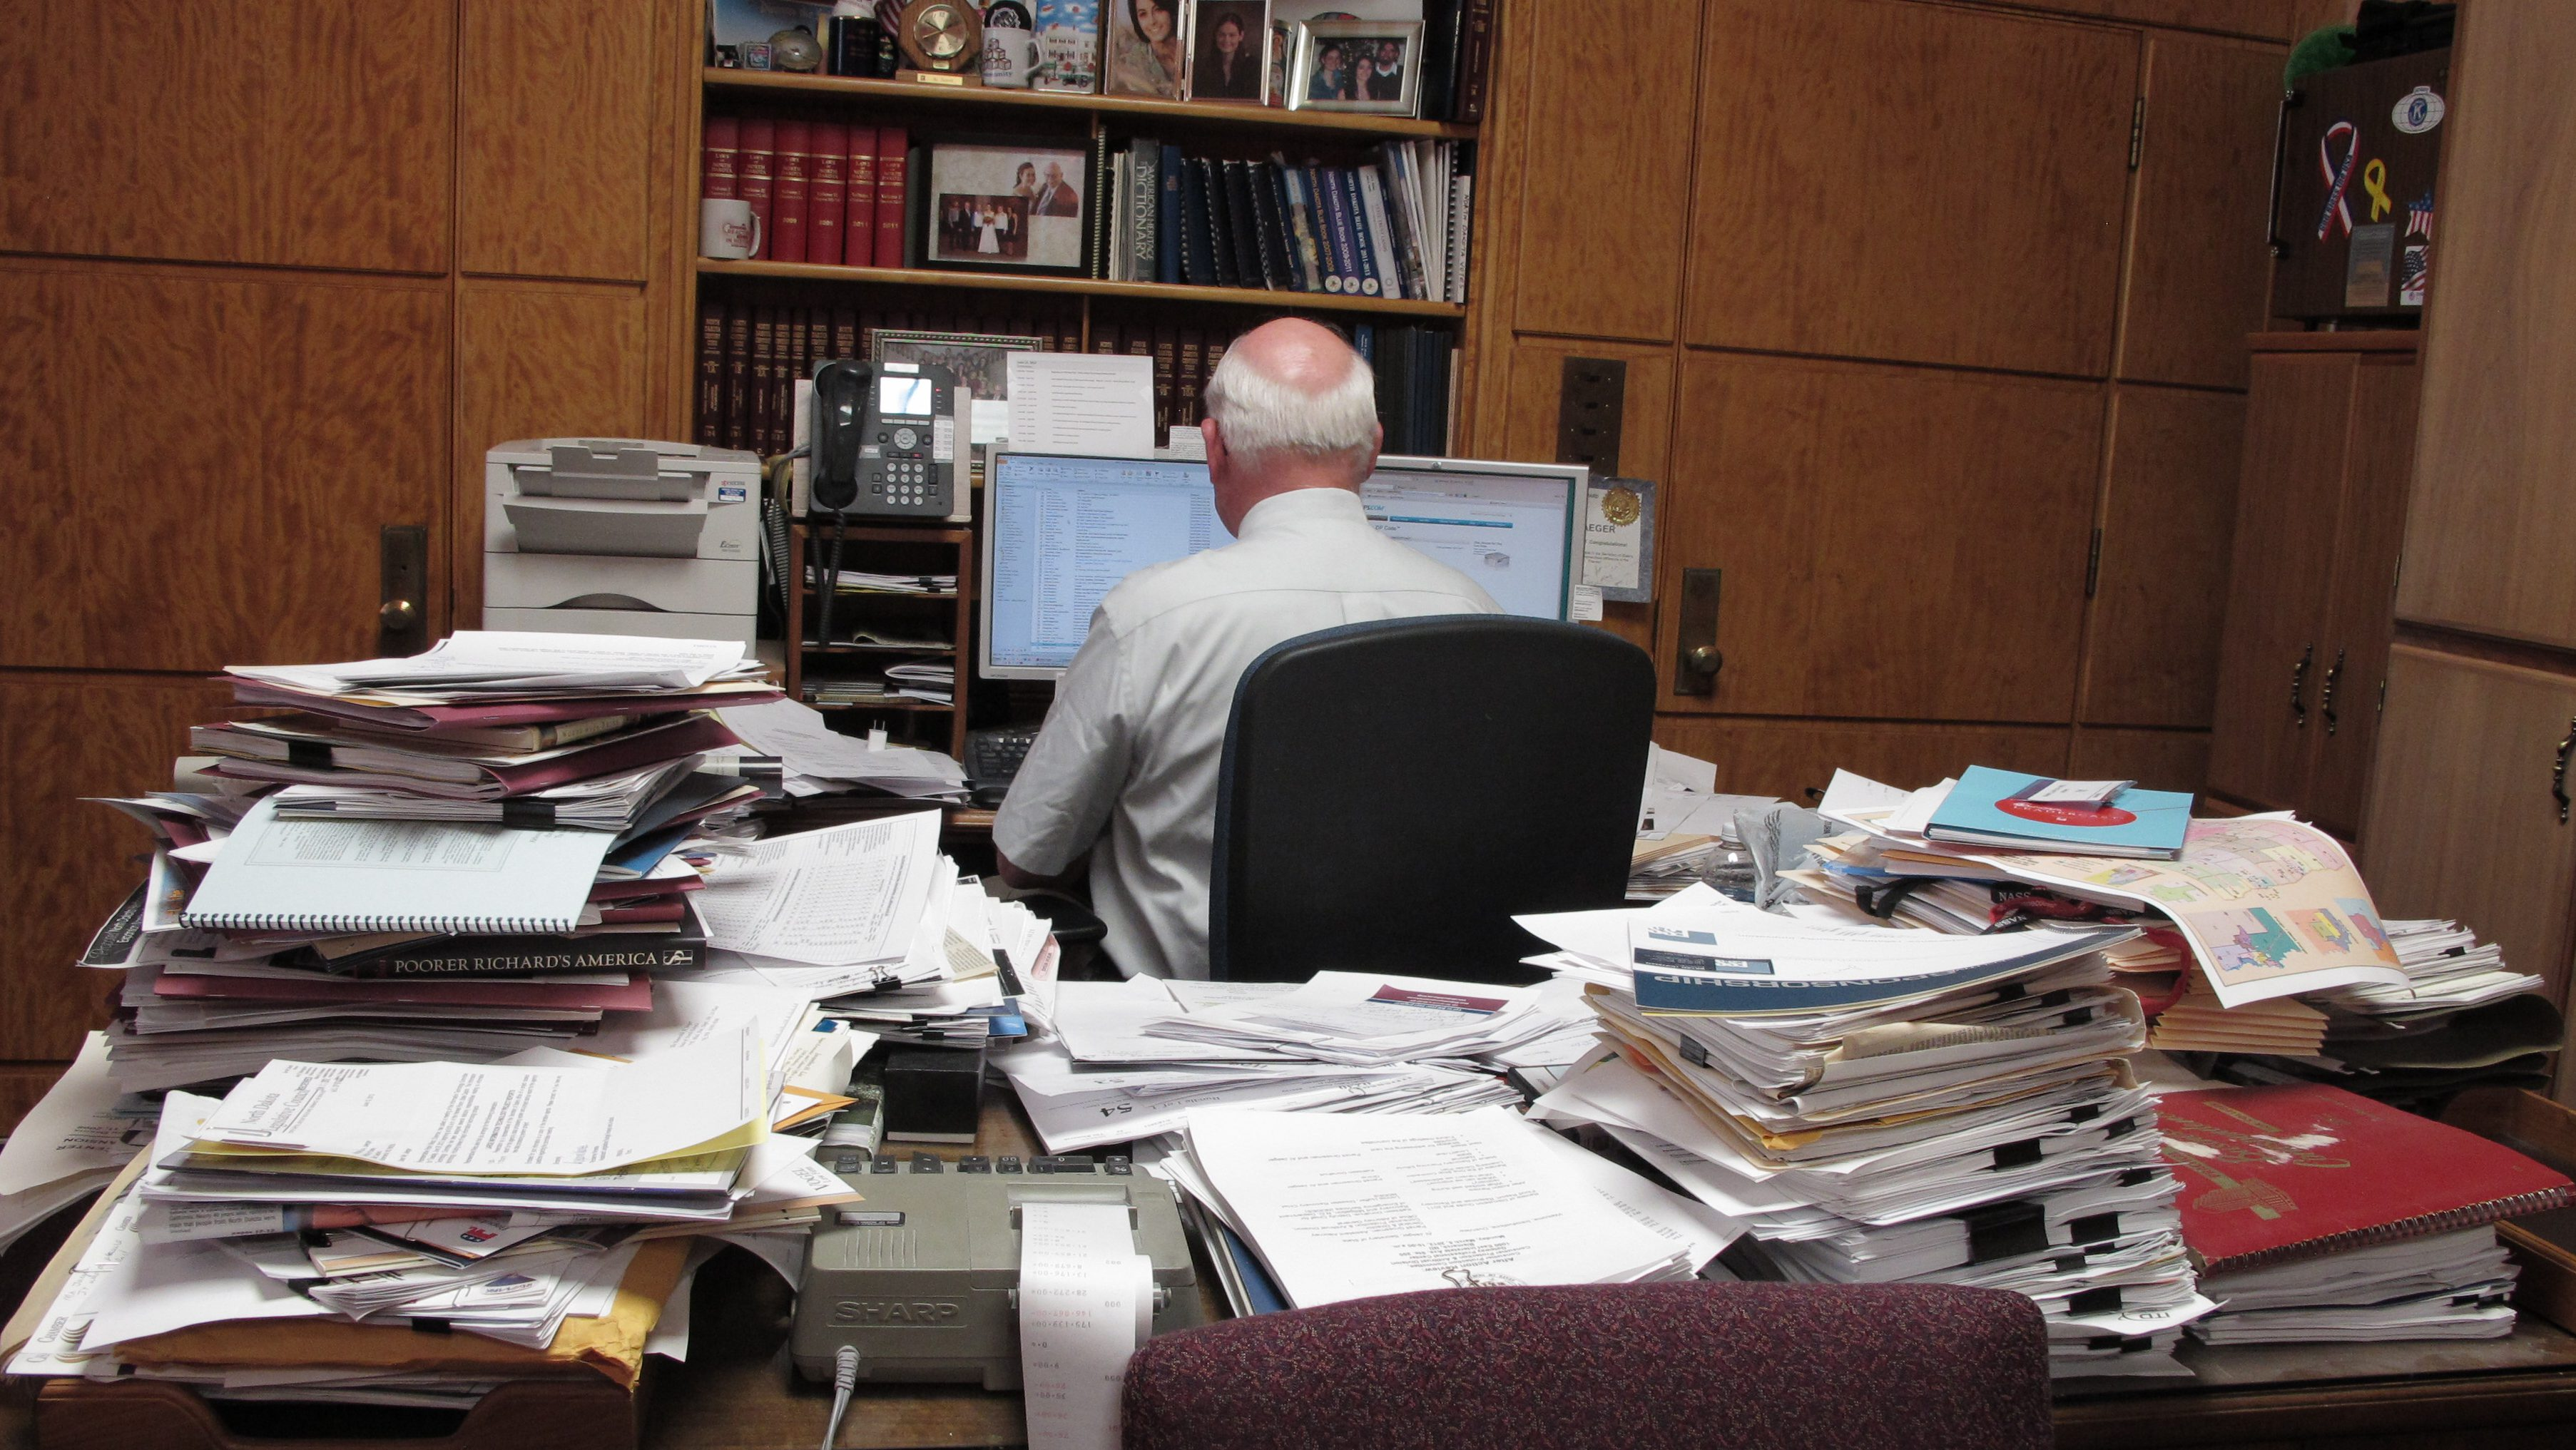 In this Wednesday, June 13, 2012 photo, North Dakota Secretary of State Al Jaeger works at a computer keyboard opposite his desk, which is stacked high with papers. Jaeger received permission Tuesday, June 19, 2012 from a legislative committee to hire three new employees to help his office get caught up on business registration paperwork. Registration processing is done elsewhere in the secretary of state's office in the North Dakota Capitol in Bismarck, N.D. (AP Photo/Dale Wetzel)